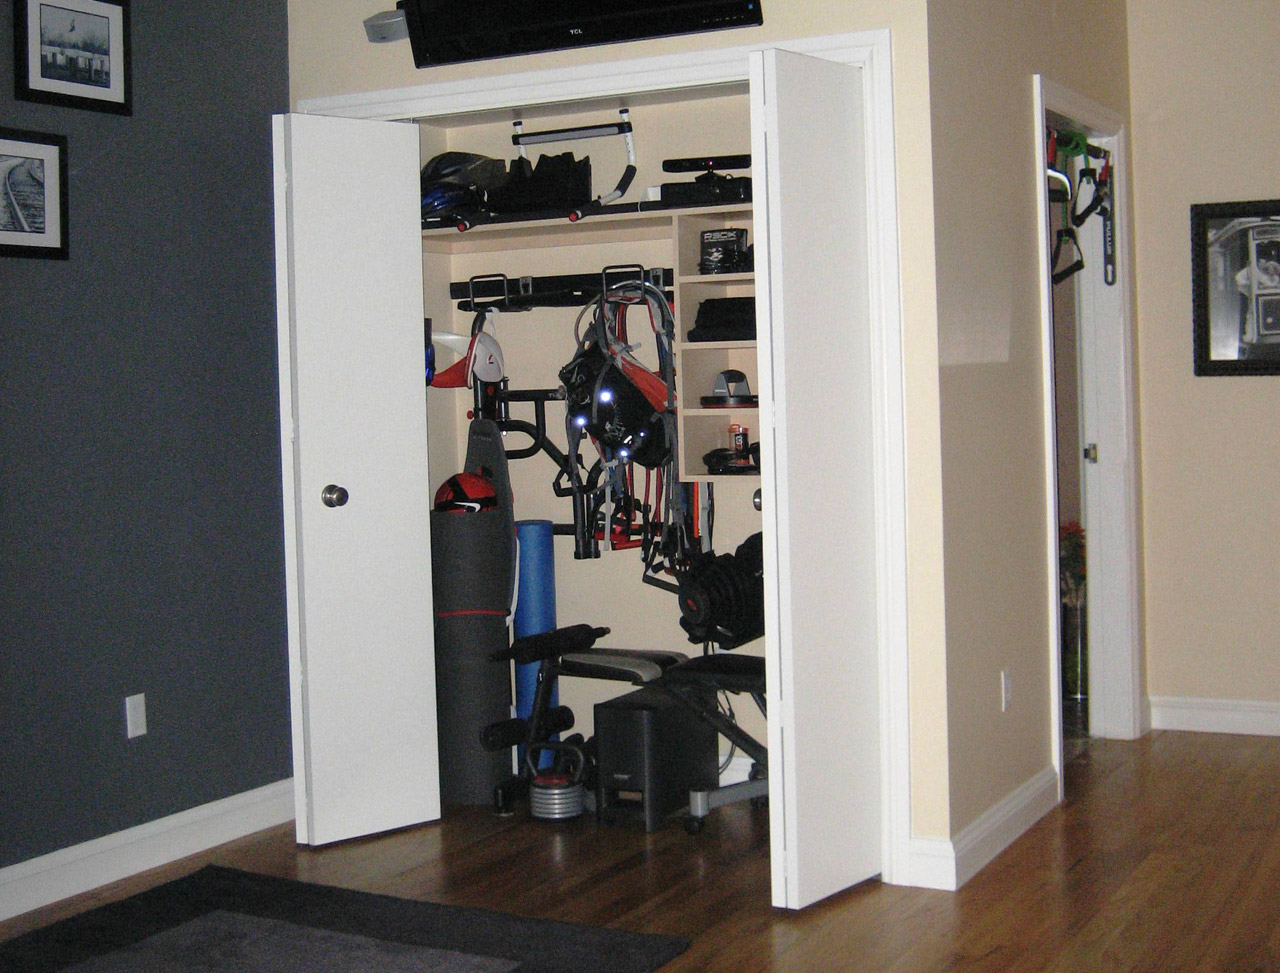 The home gym balancing functionality with aesthetics